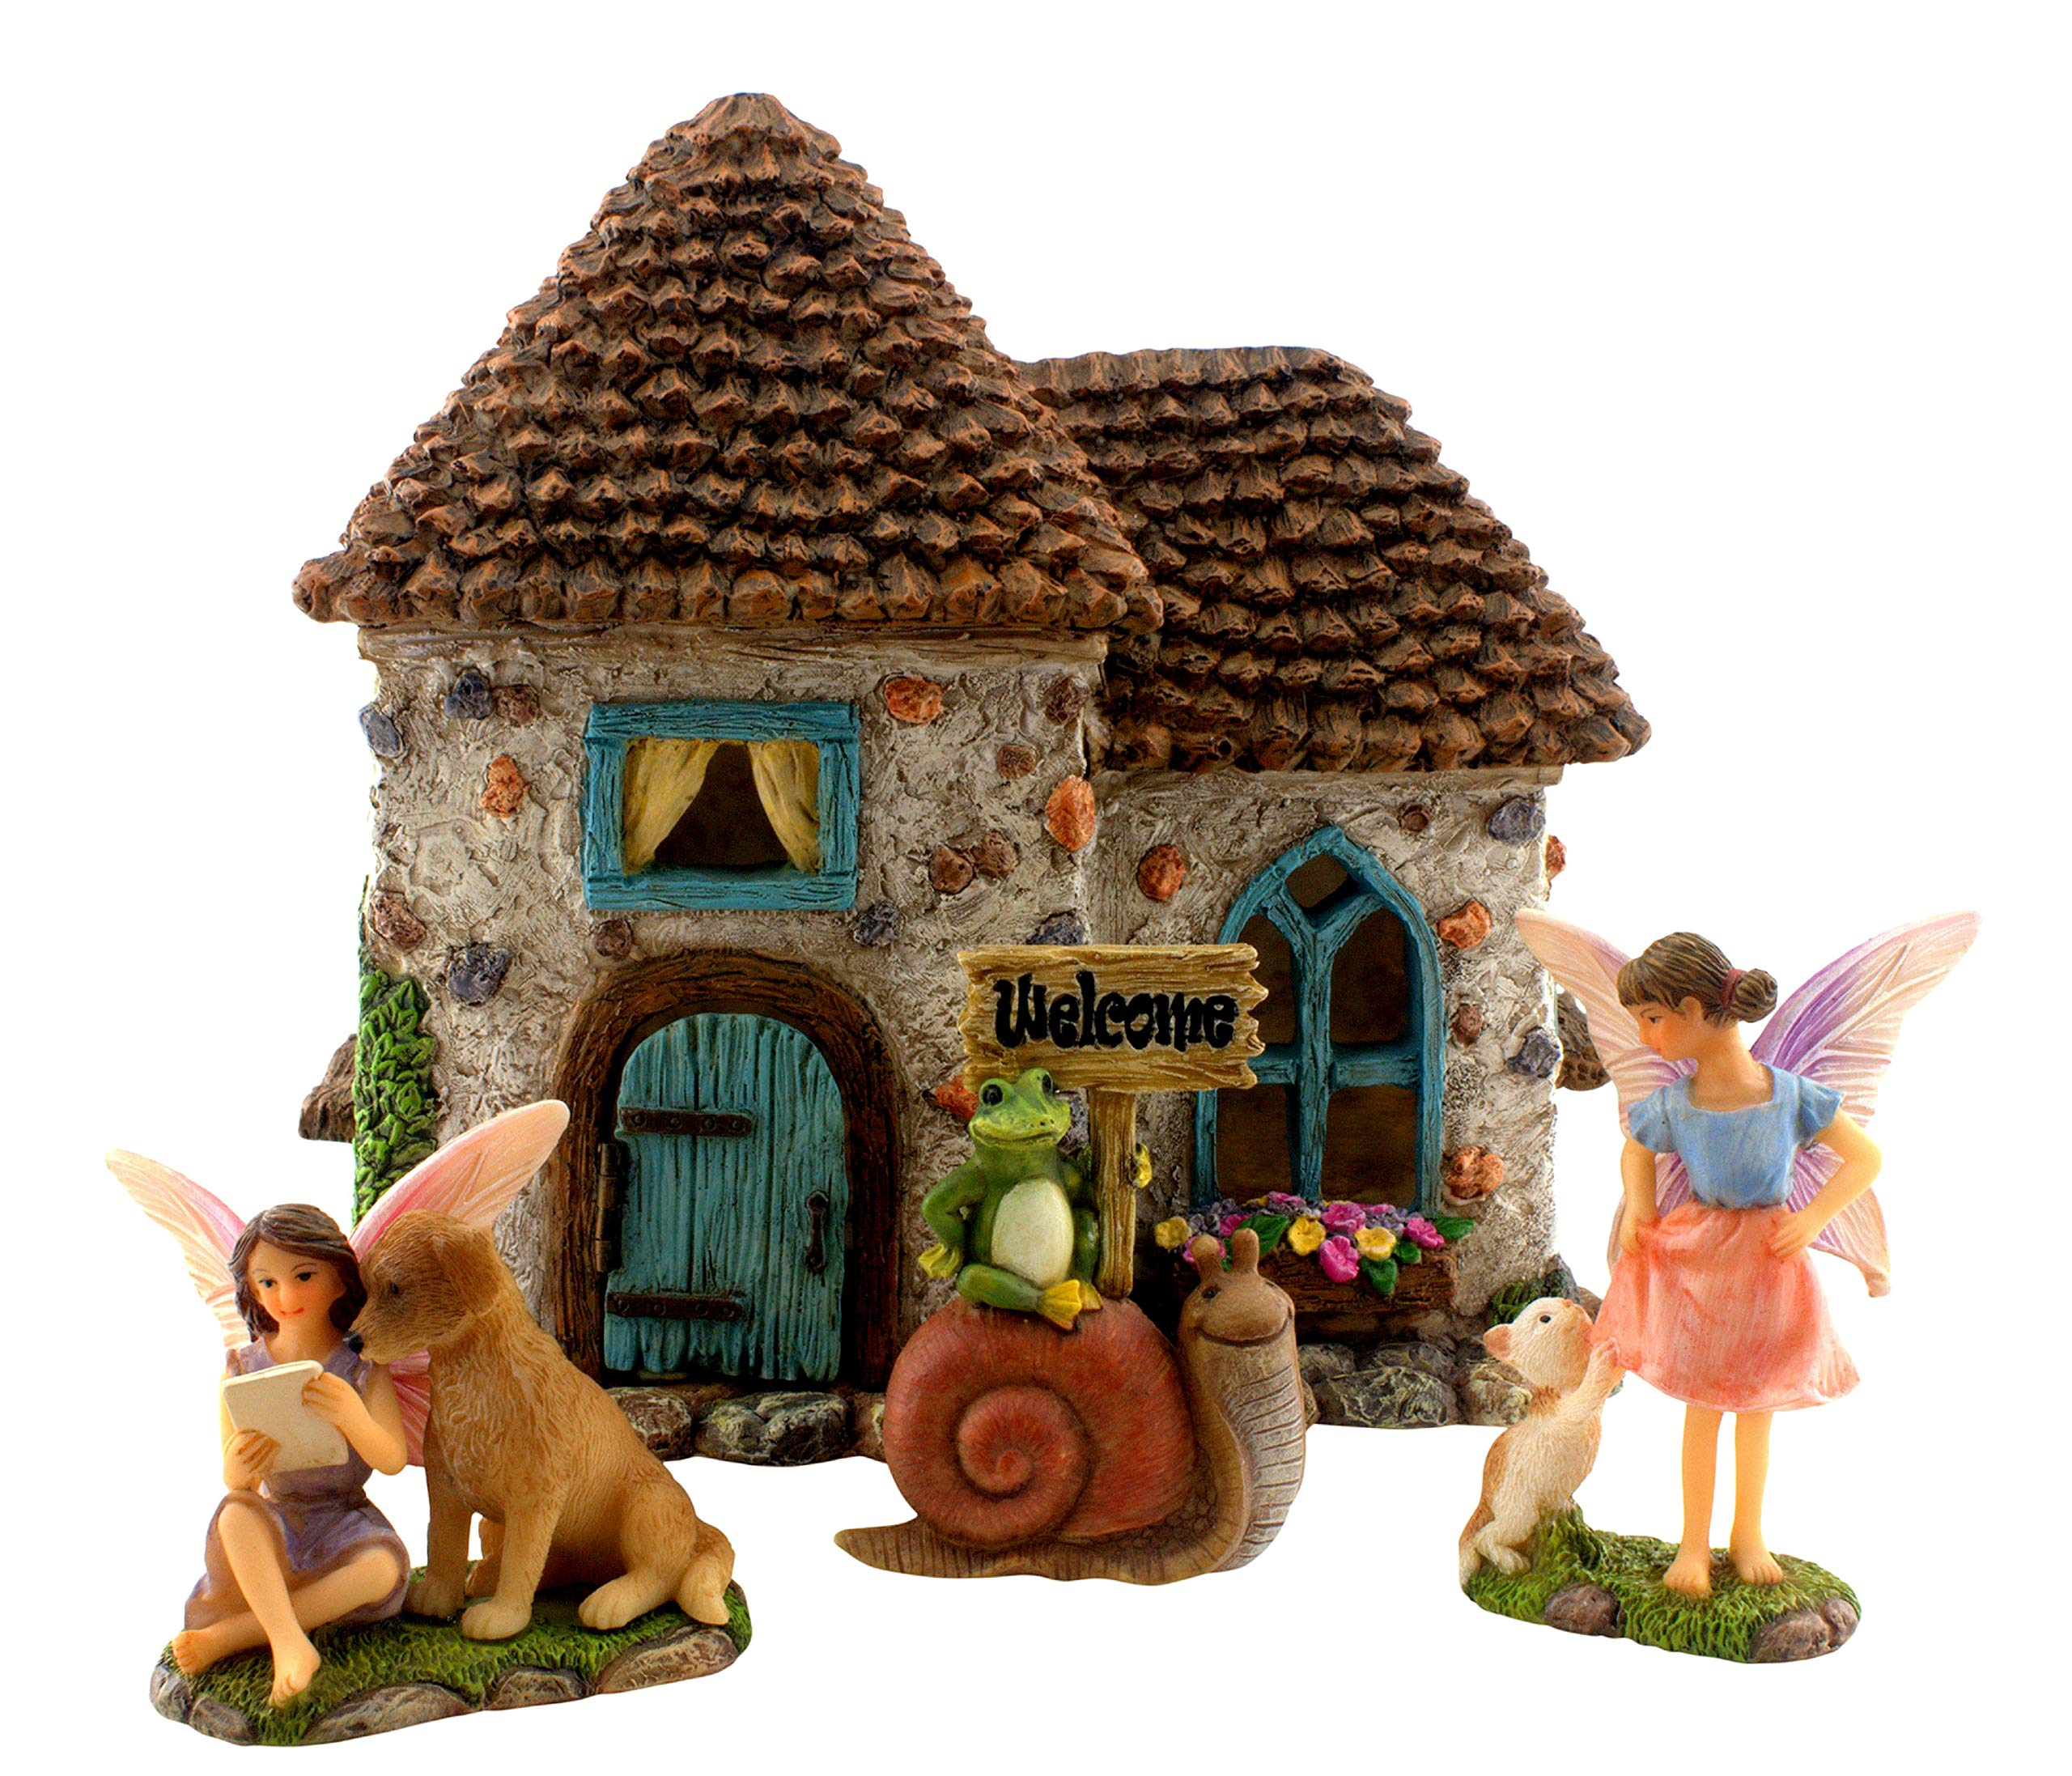 PRETMANNS Fairy Garden Accessories - House Kit with Miniature Fairies & Welcome Sign - Fairy House is 6'' High & Door Can Open - 4 Pieces